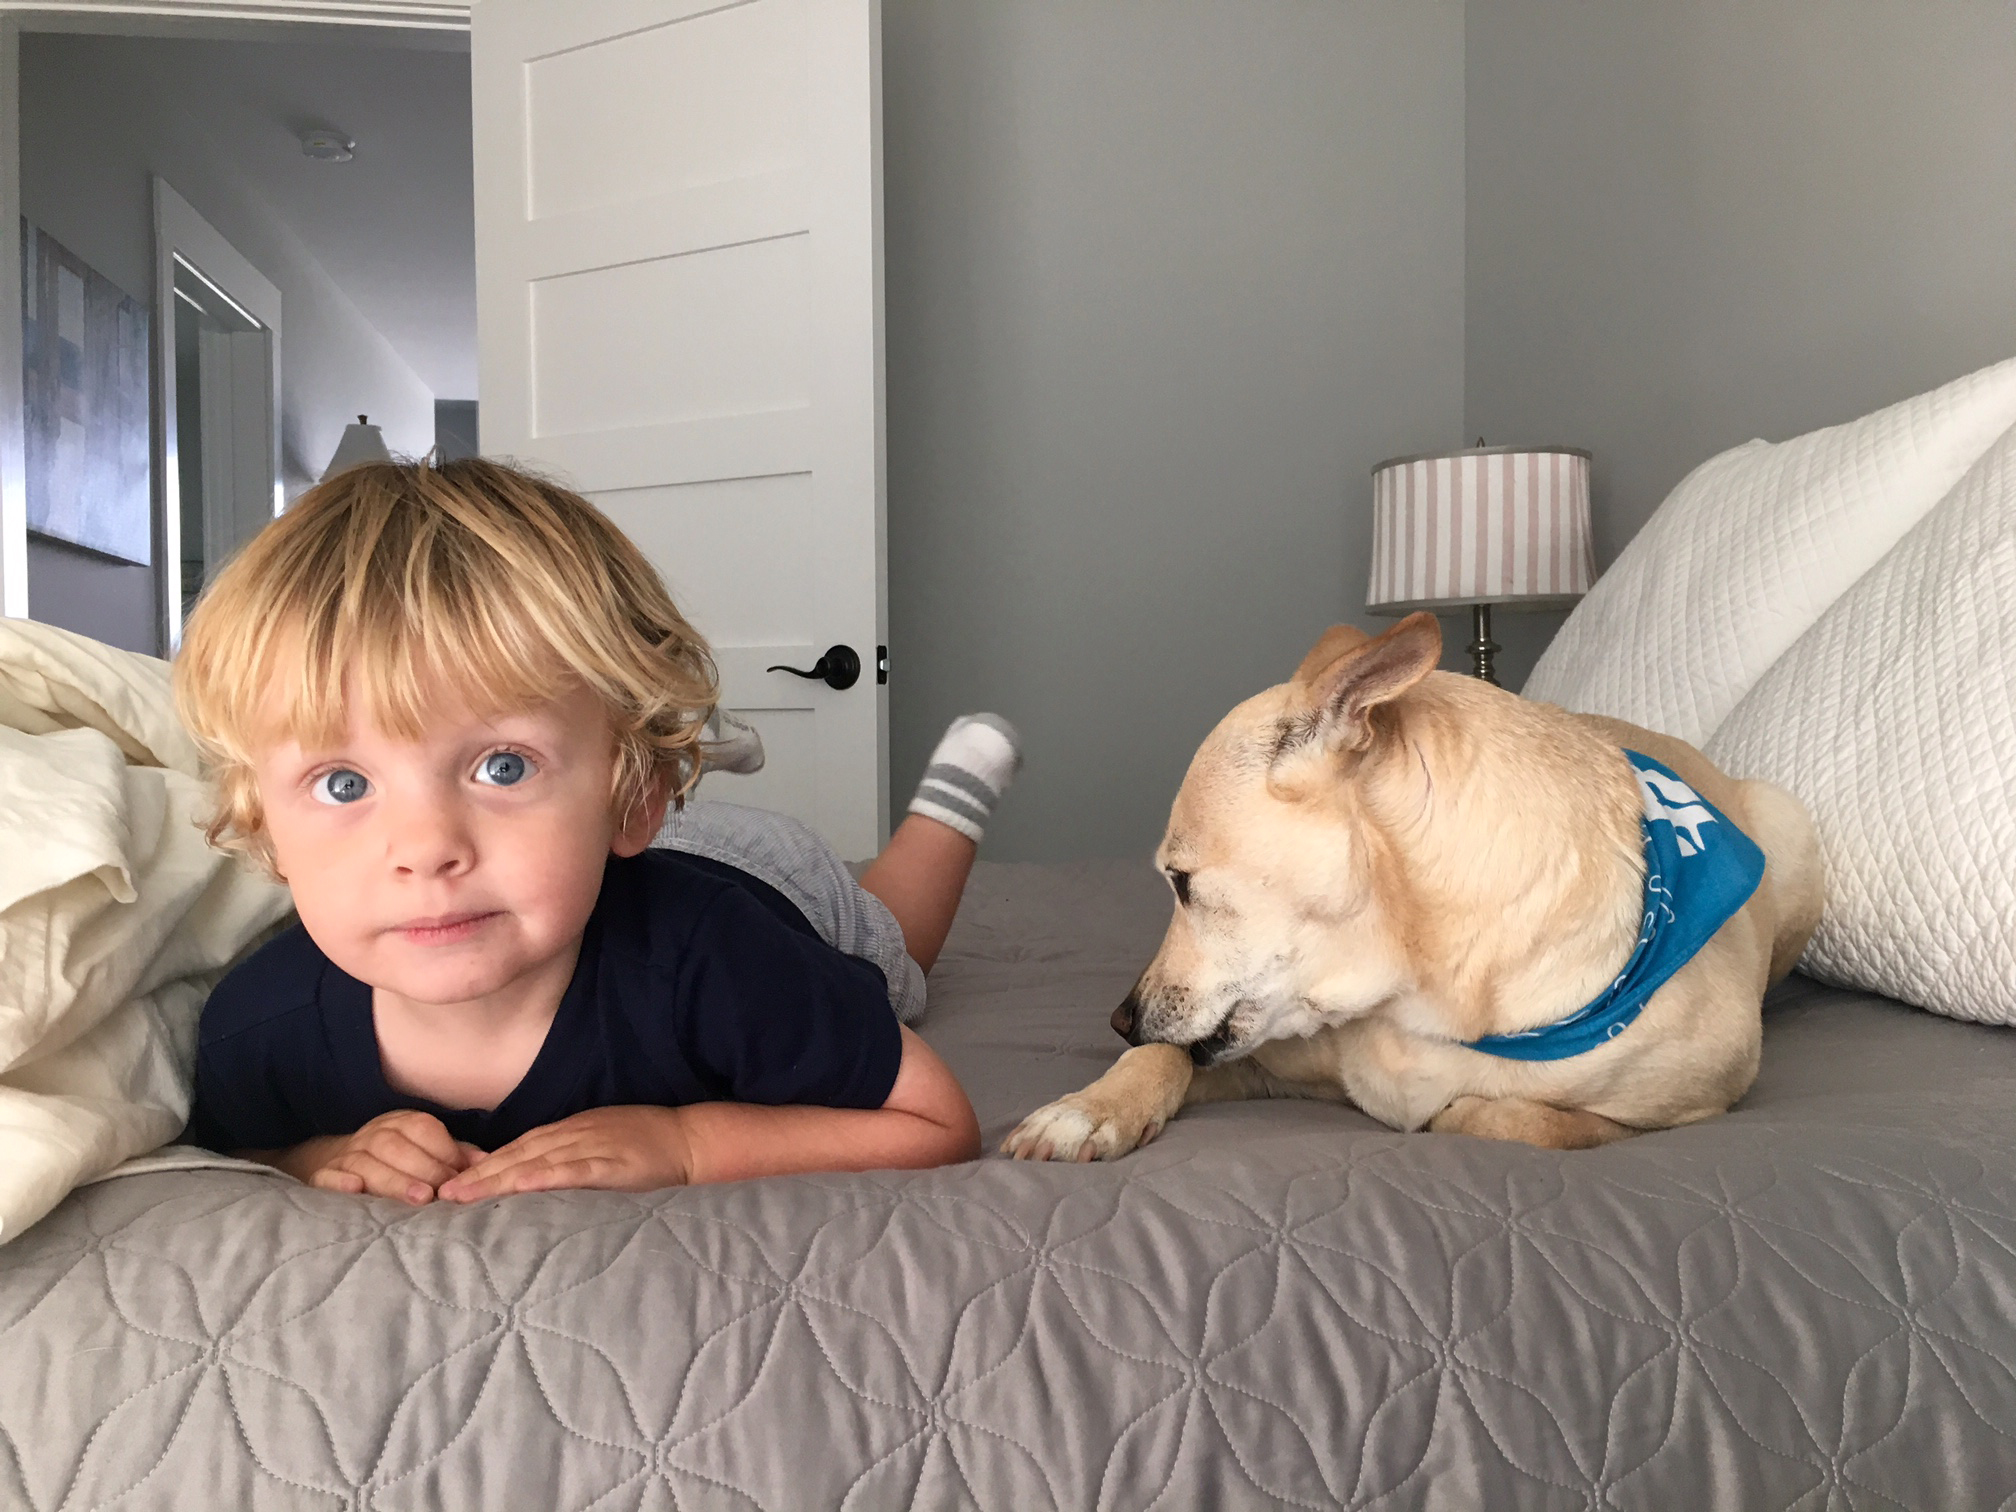 Hayden and Sebastian chillin' in the bed.